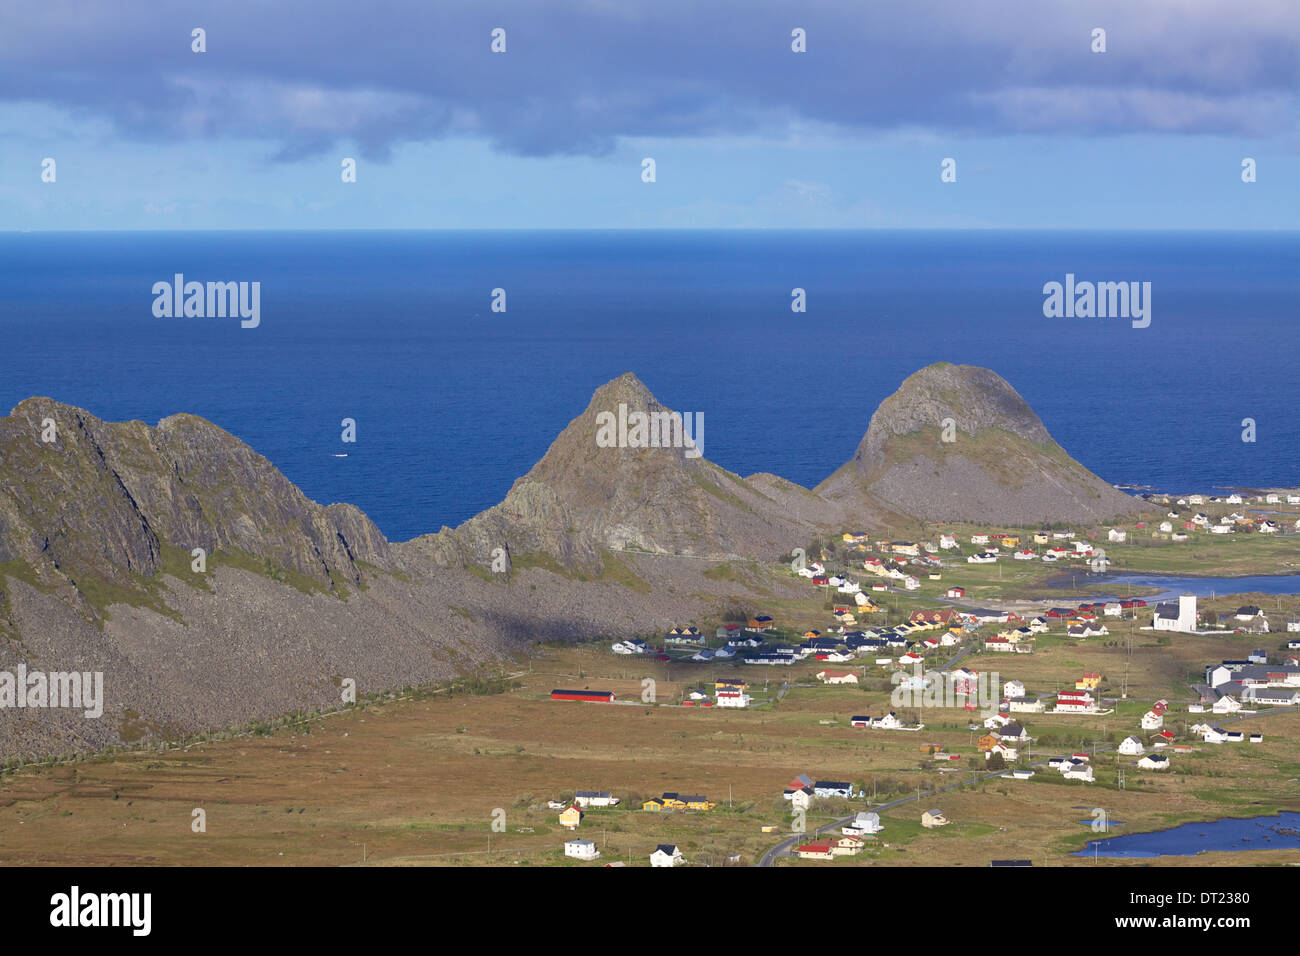 Picturesque fishing town of sorland on remote island of Vaeroy, Lofoten islands in Norway - Stock Image